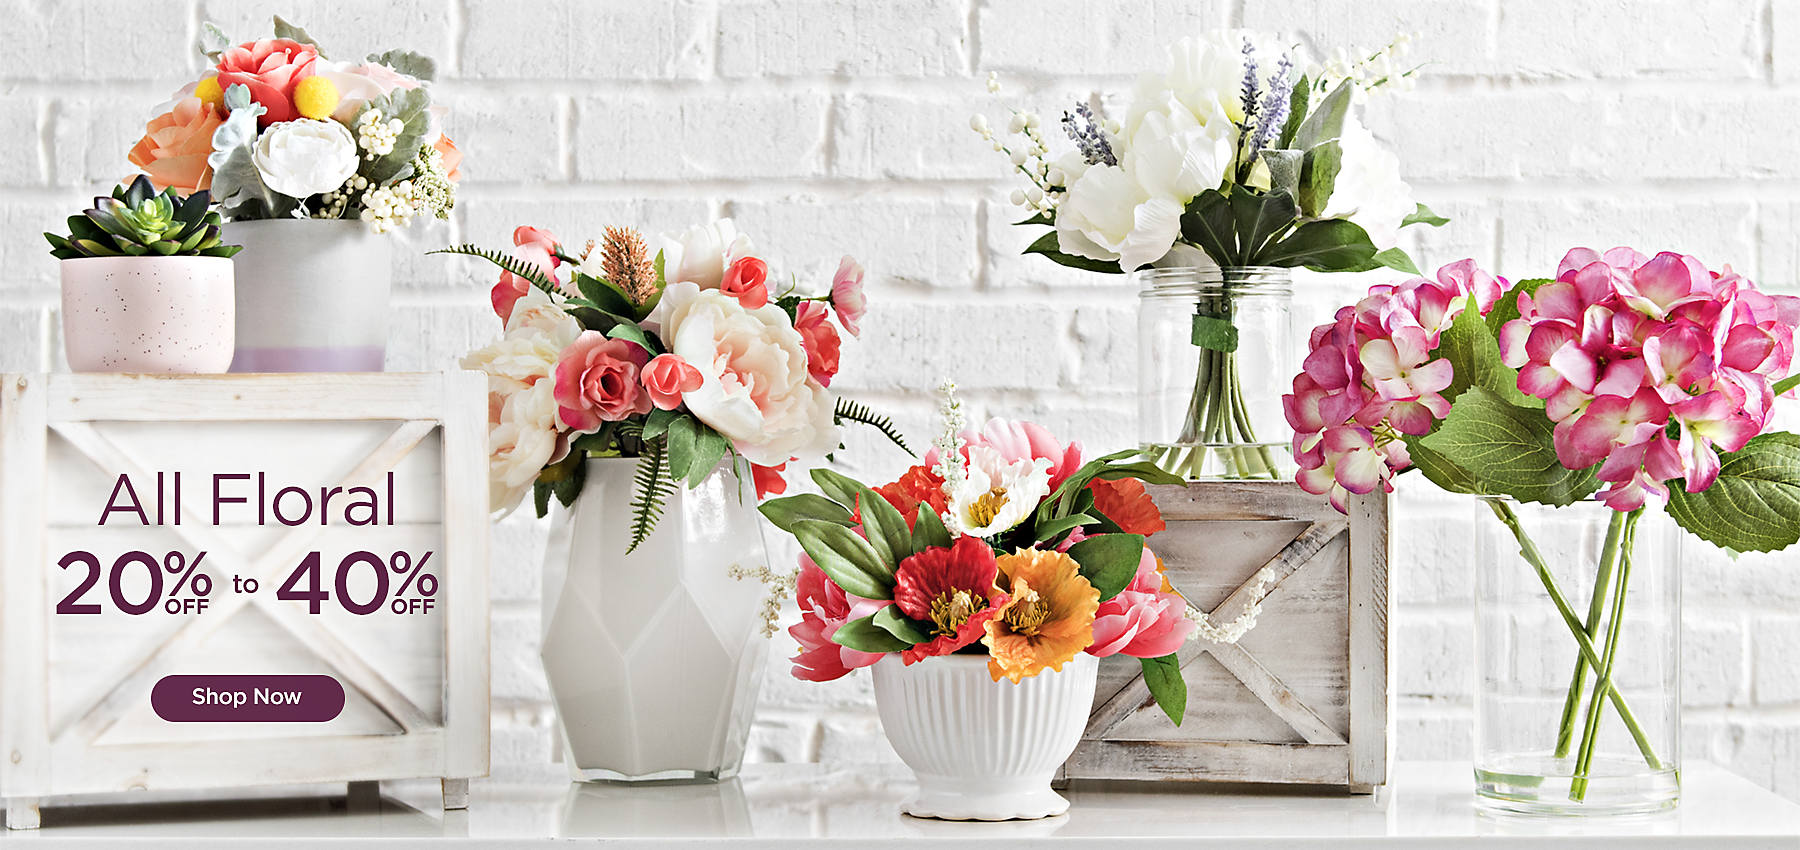 20 to 40% off All Floral - Shop Now